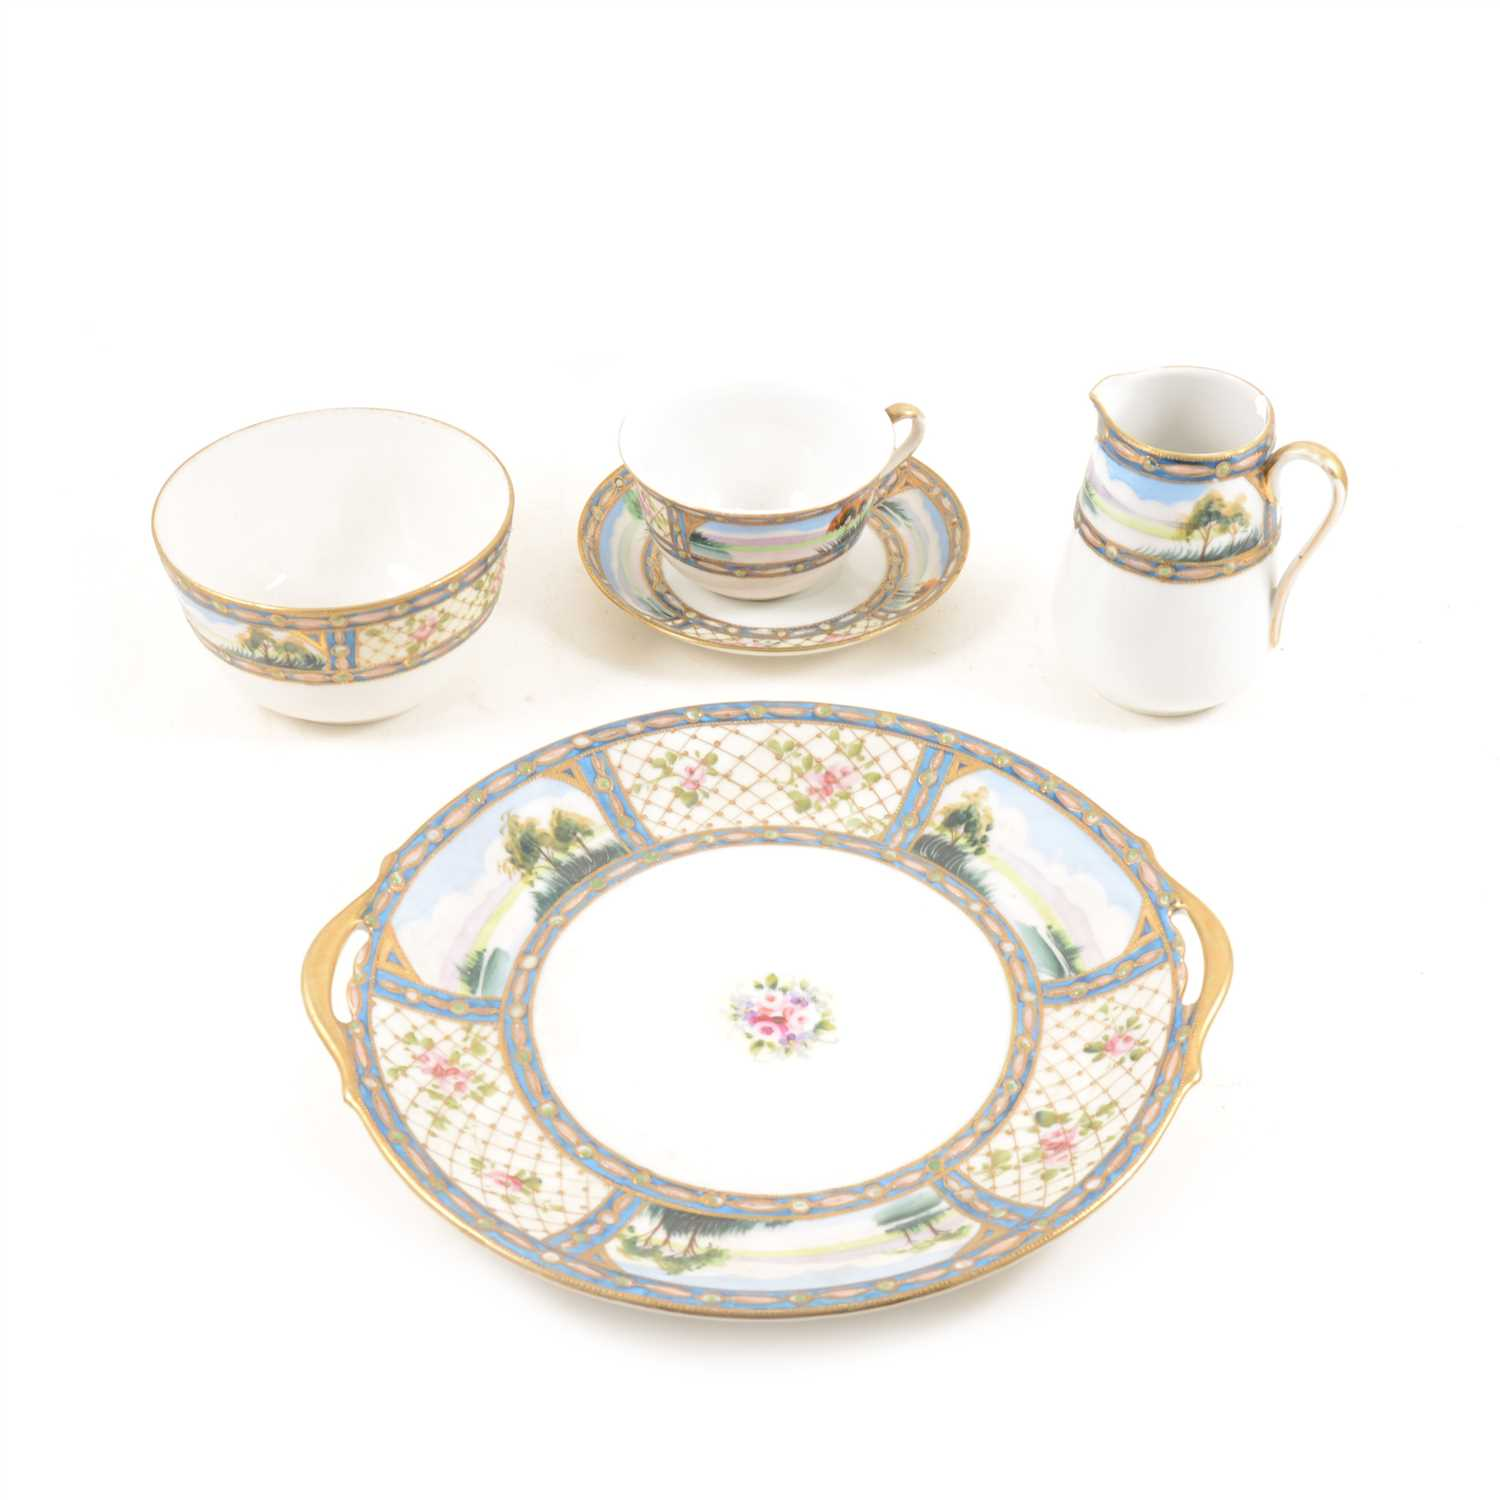 Lot 87-A Japanese Nippon hand painted tea service decorated with a floral lattice work border and lake scenes